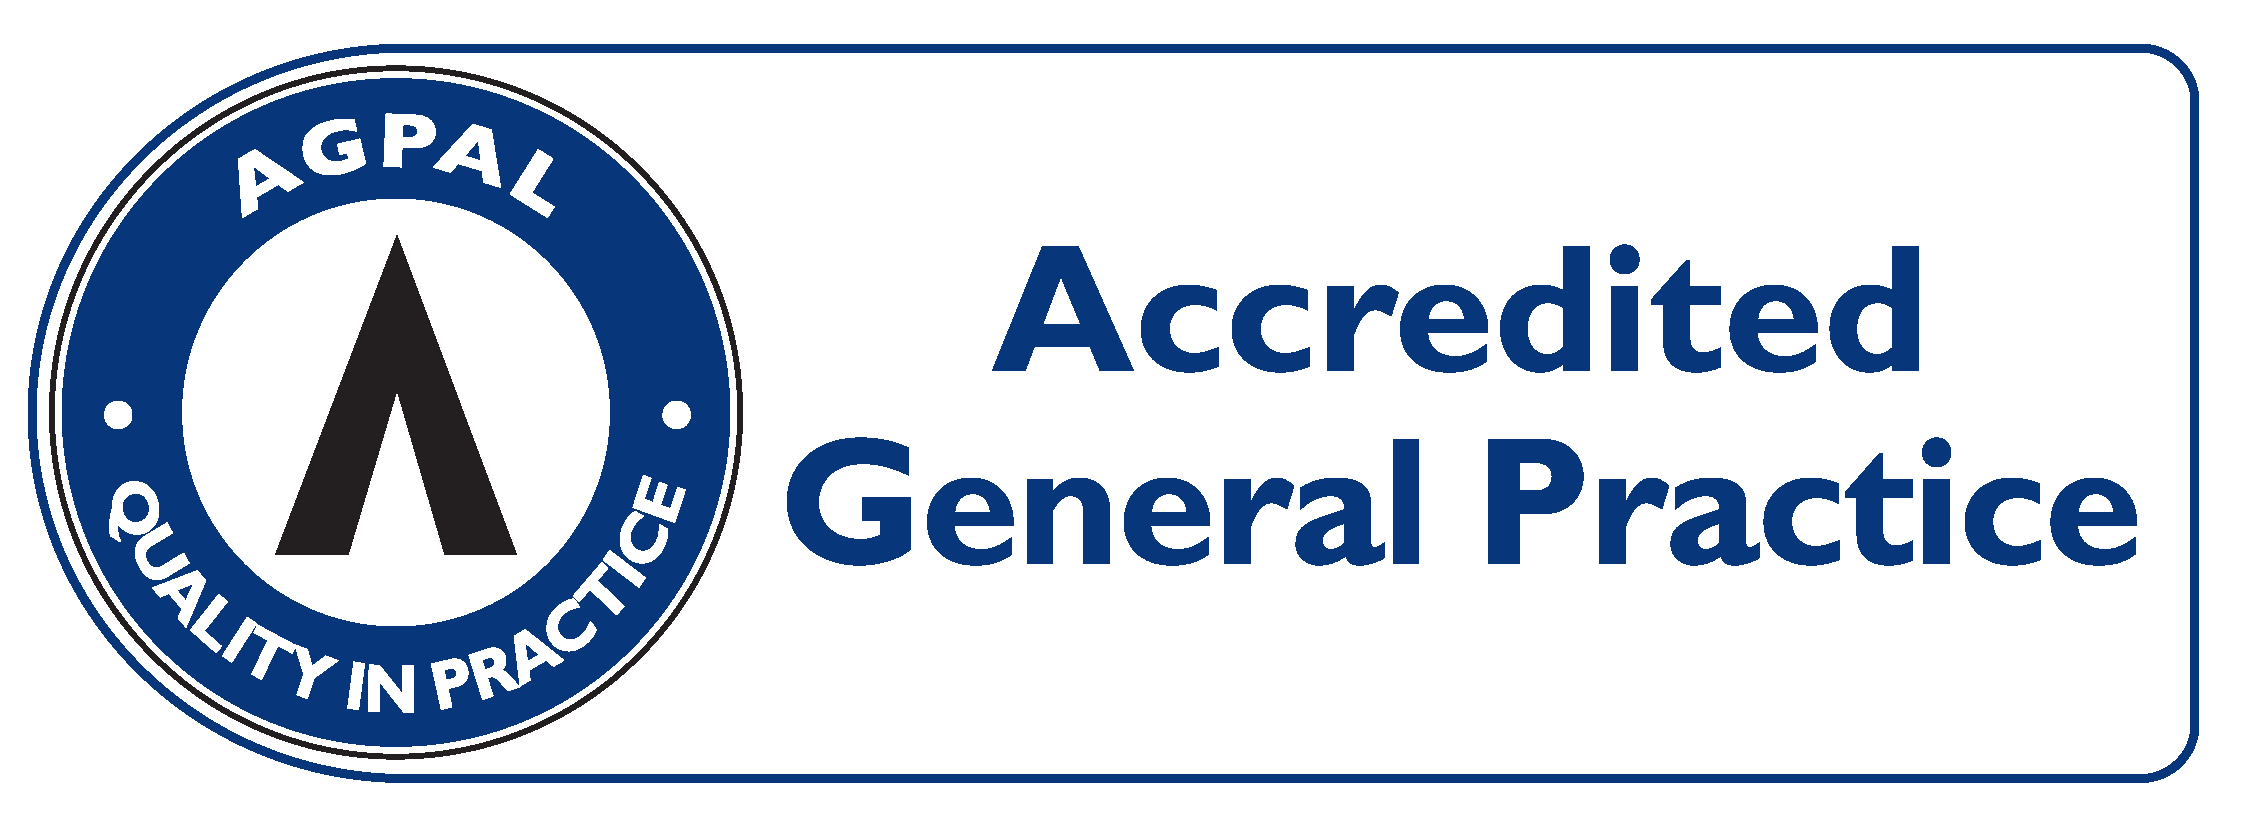 AGPAL – General Practice Accredited Symbol – PNG